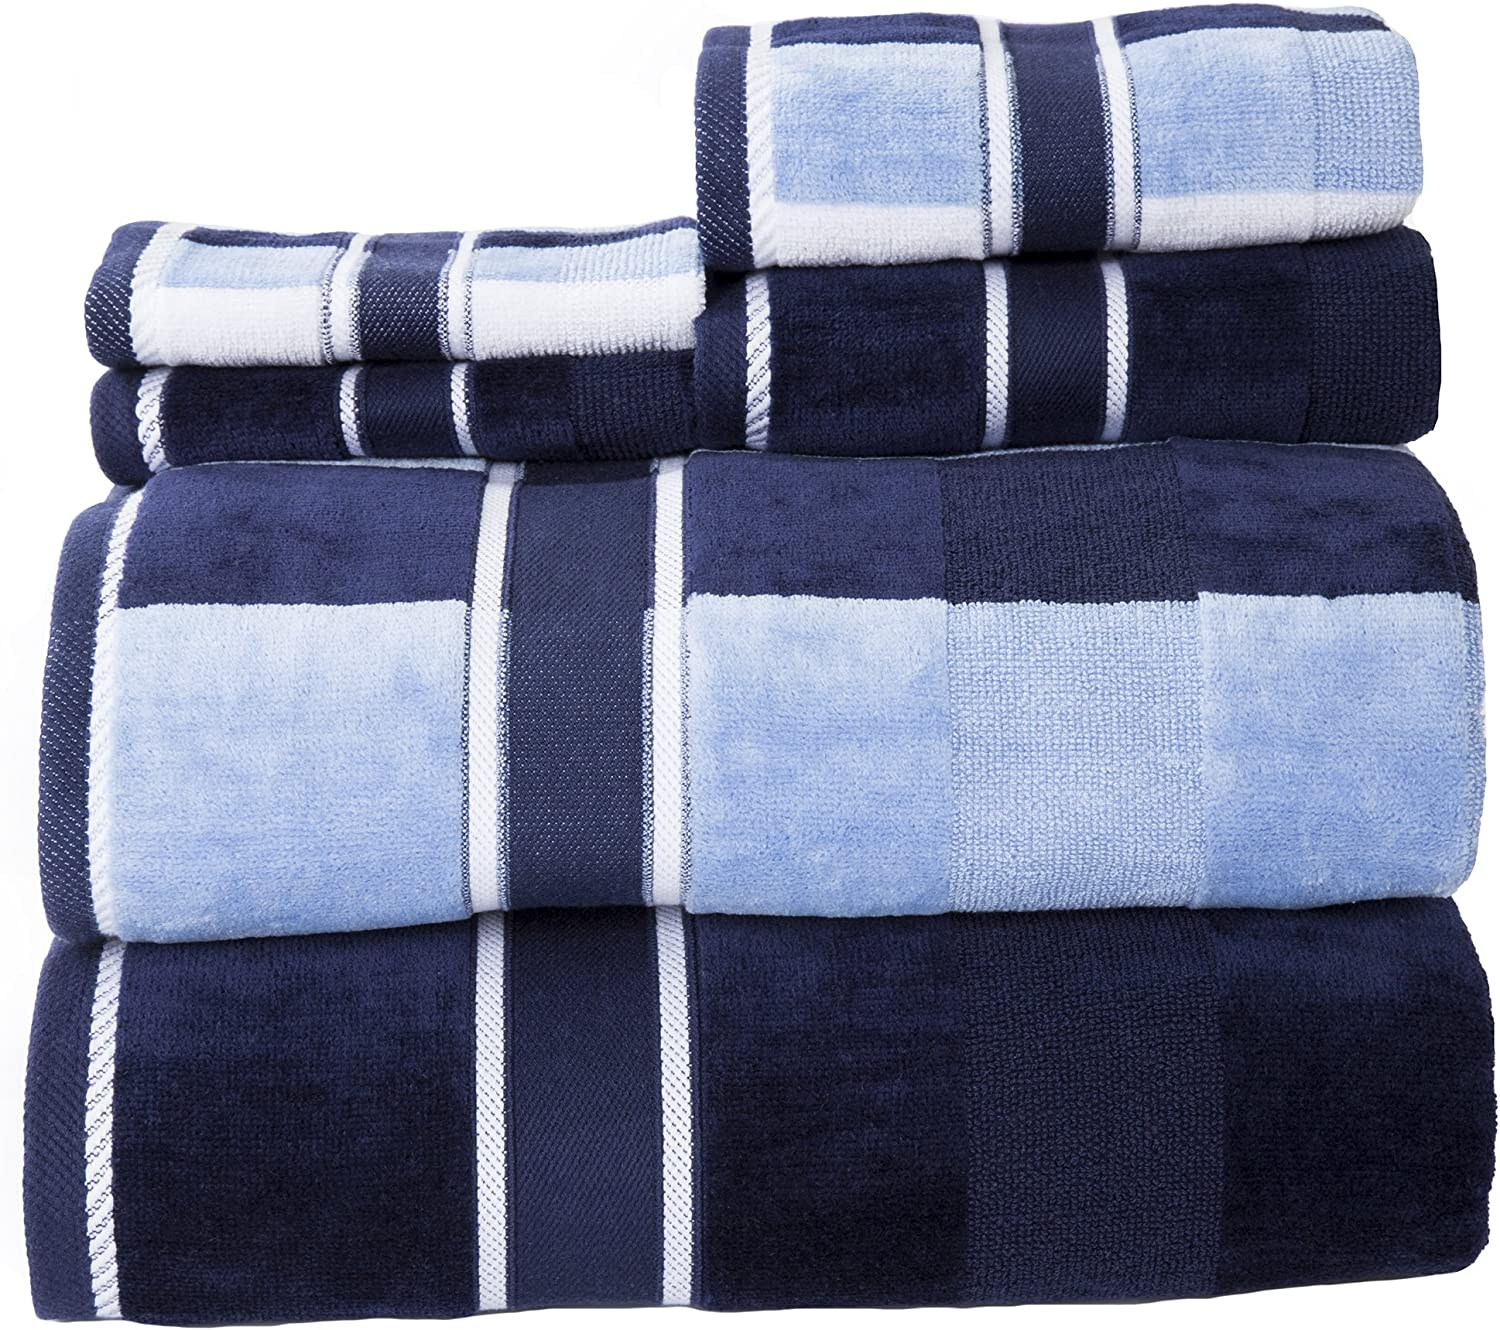 Lavish Home 100% Cotton Oakville Velour 6 Piece Towel Set-Navy